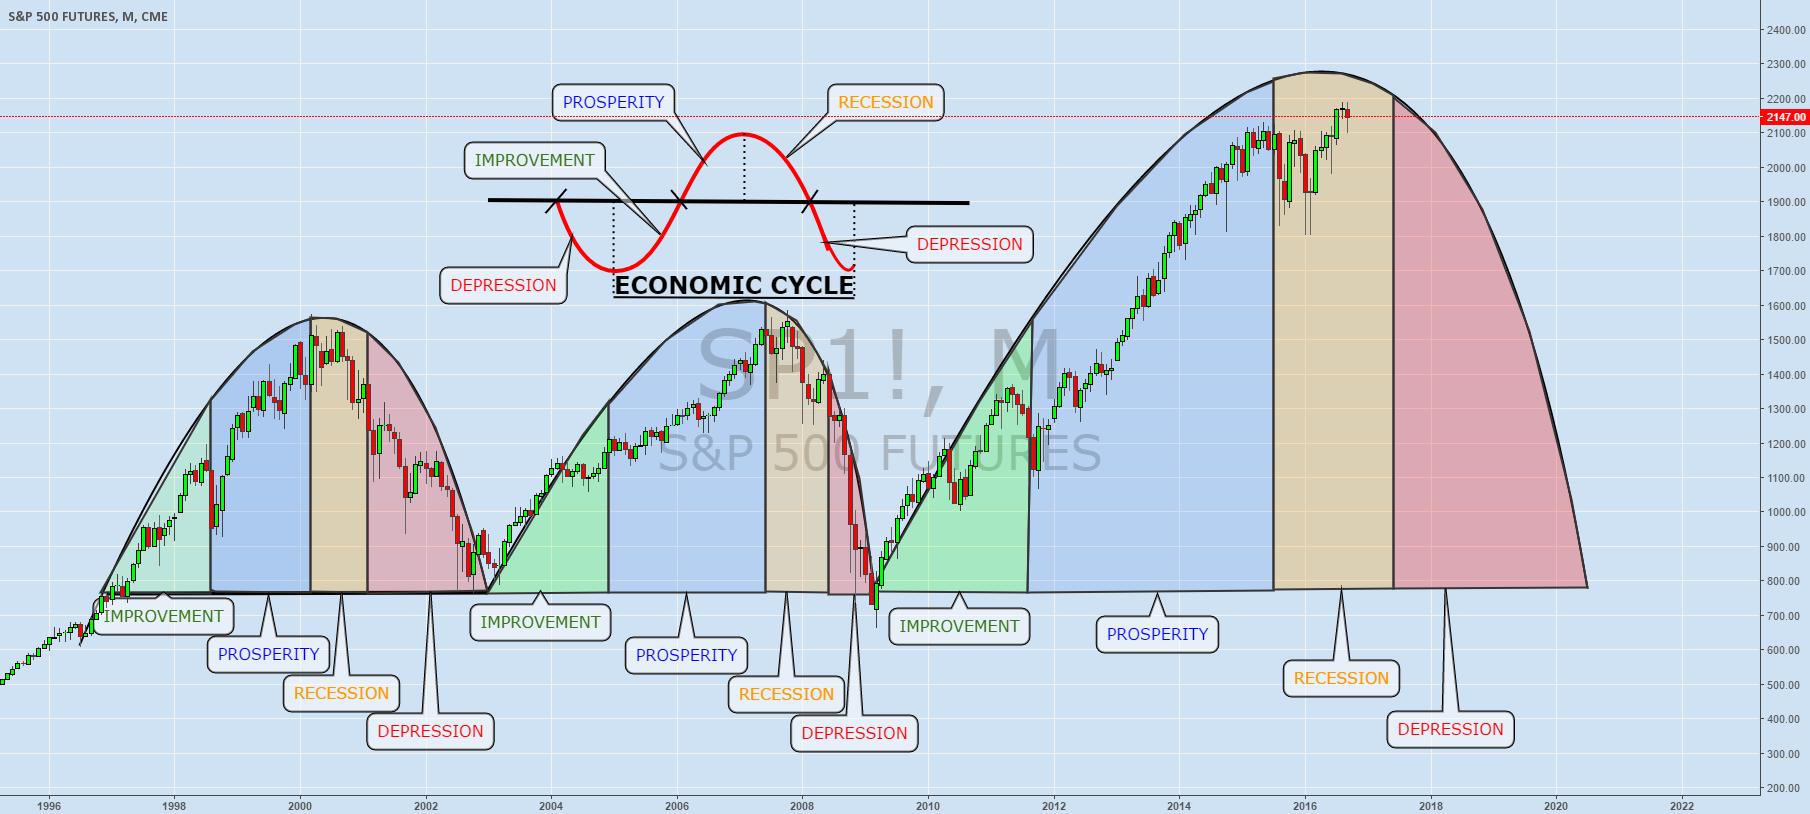 ECOMOMIC CYCLE